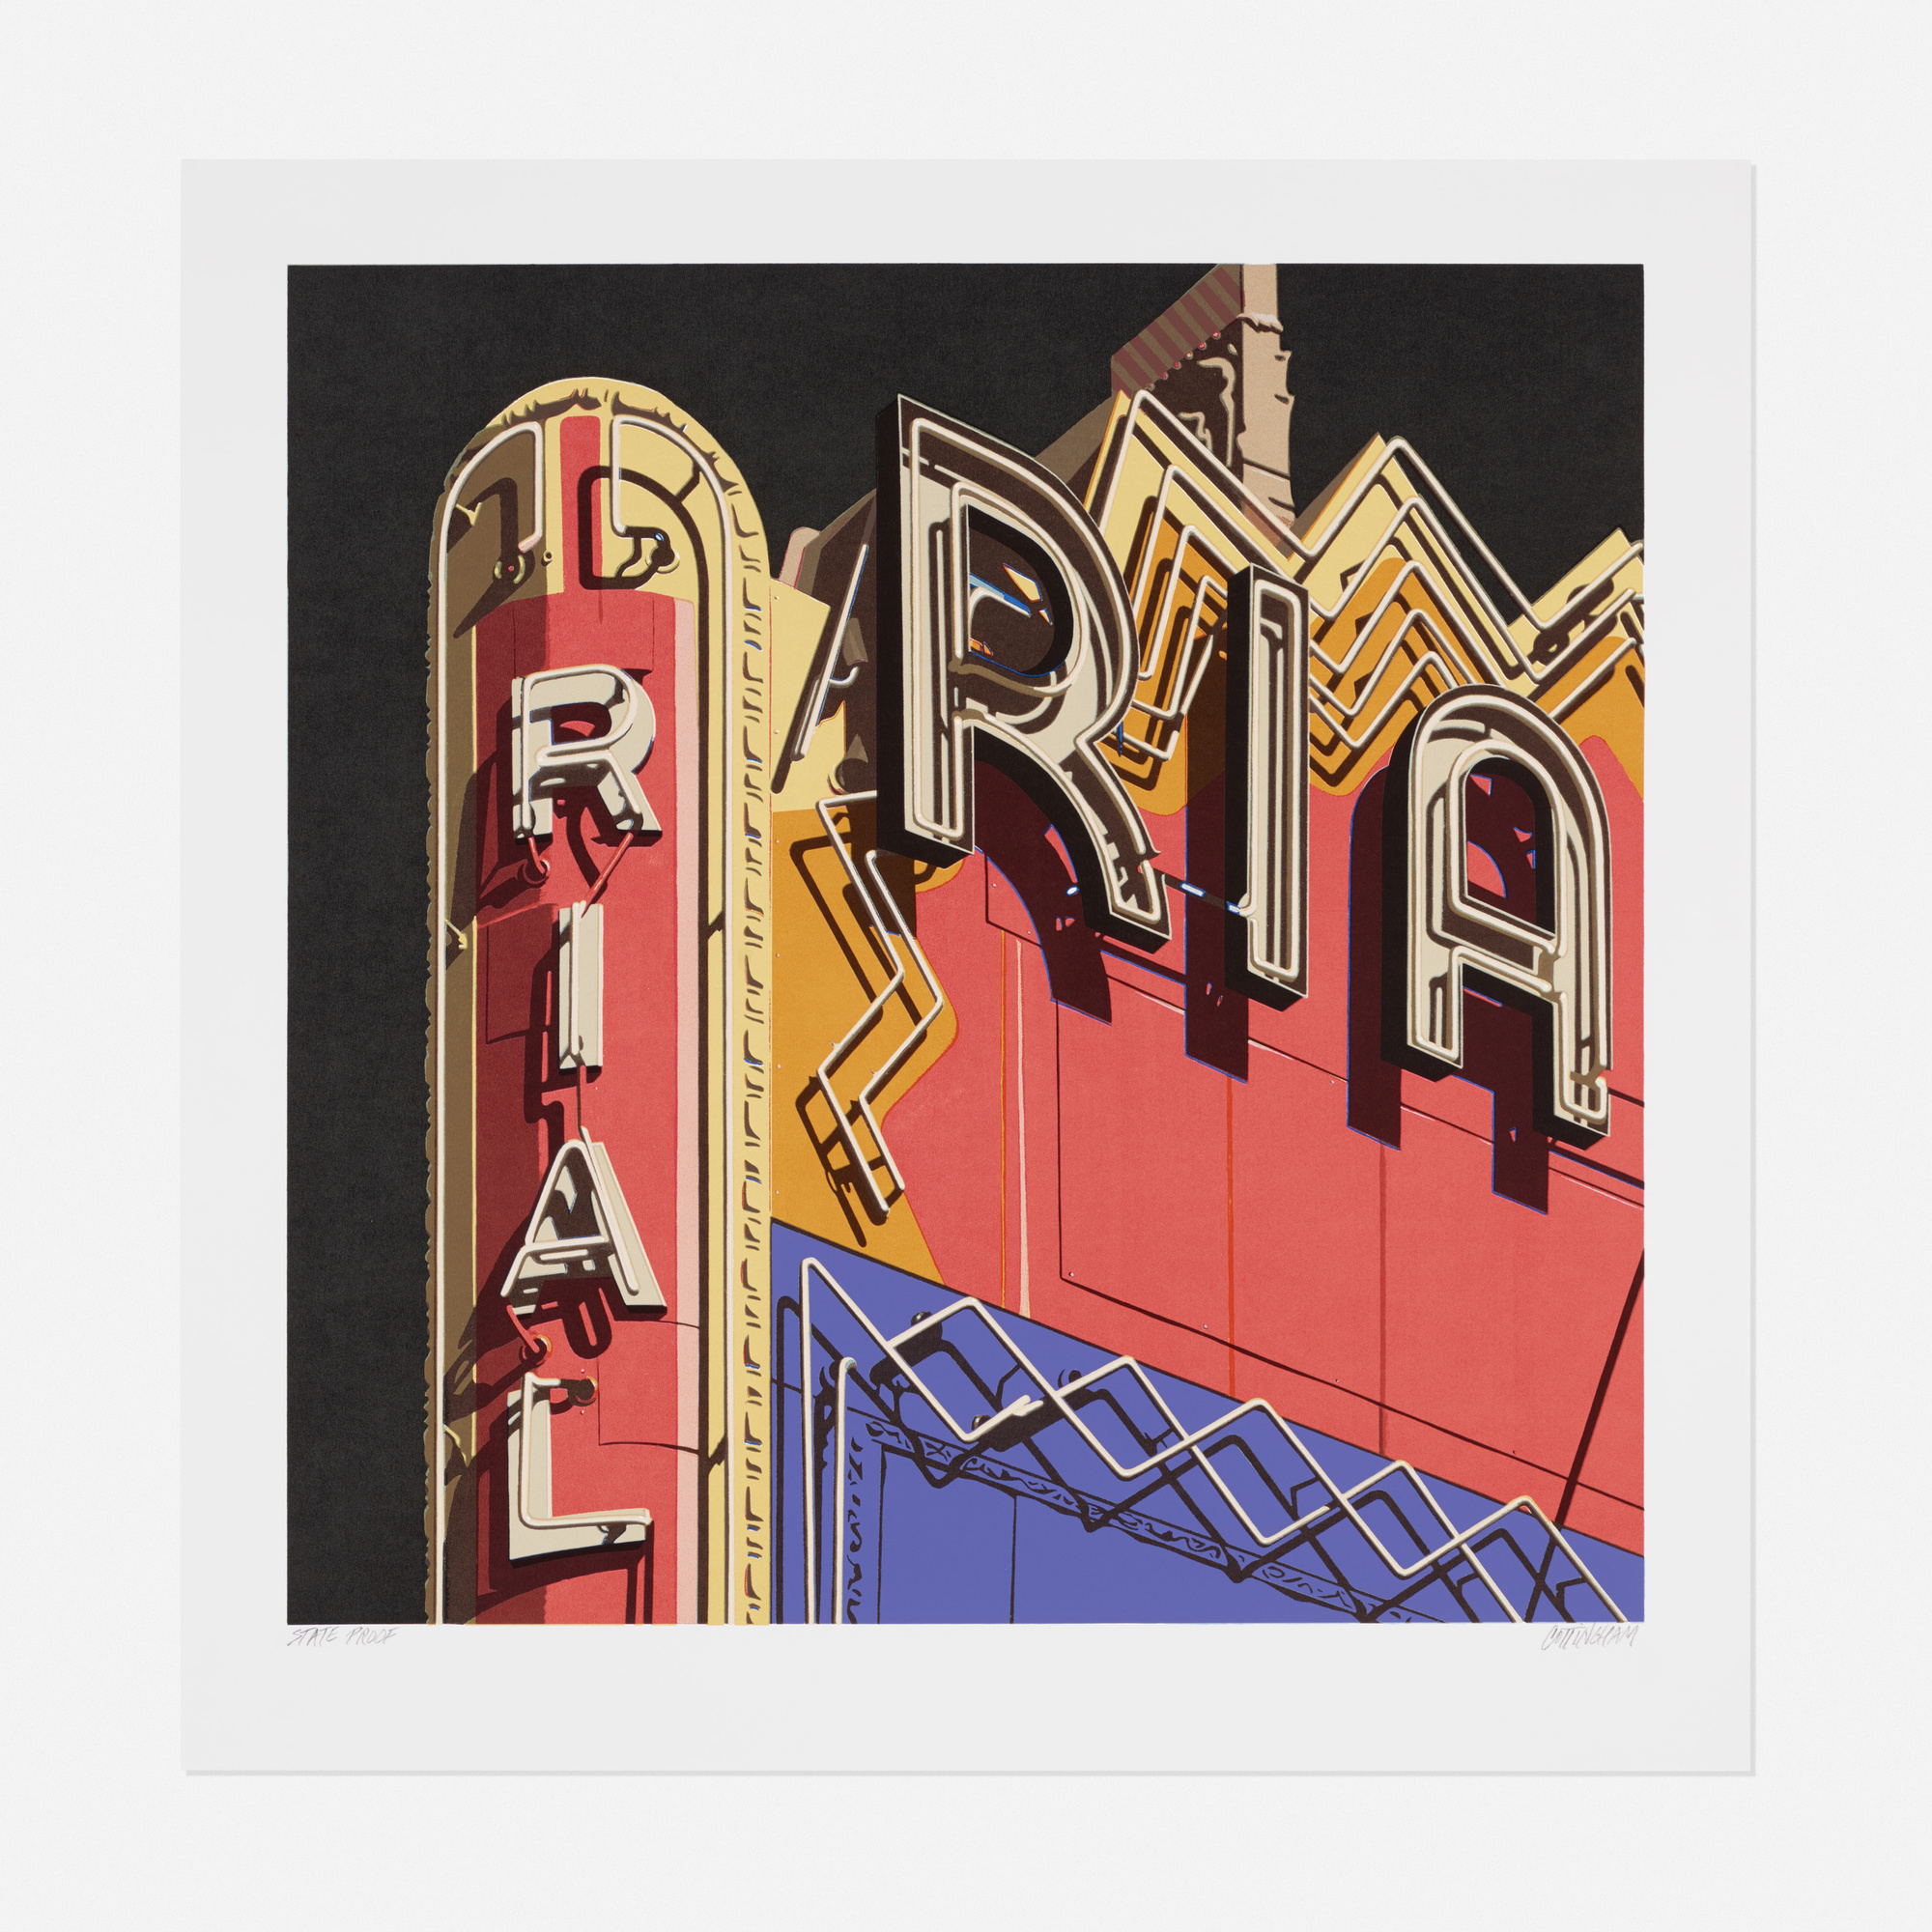 264: Robert Cottingham / Rialto (from the American Signs portfolio) (1 of 1)